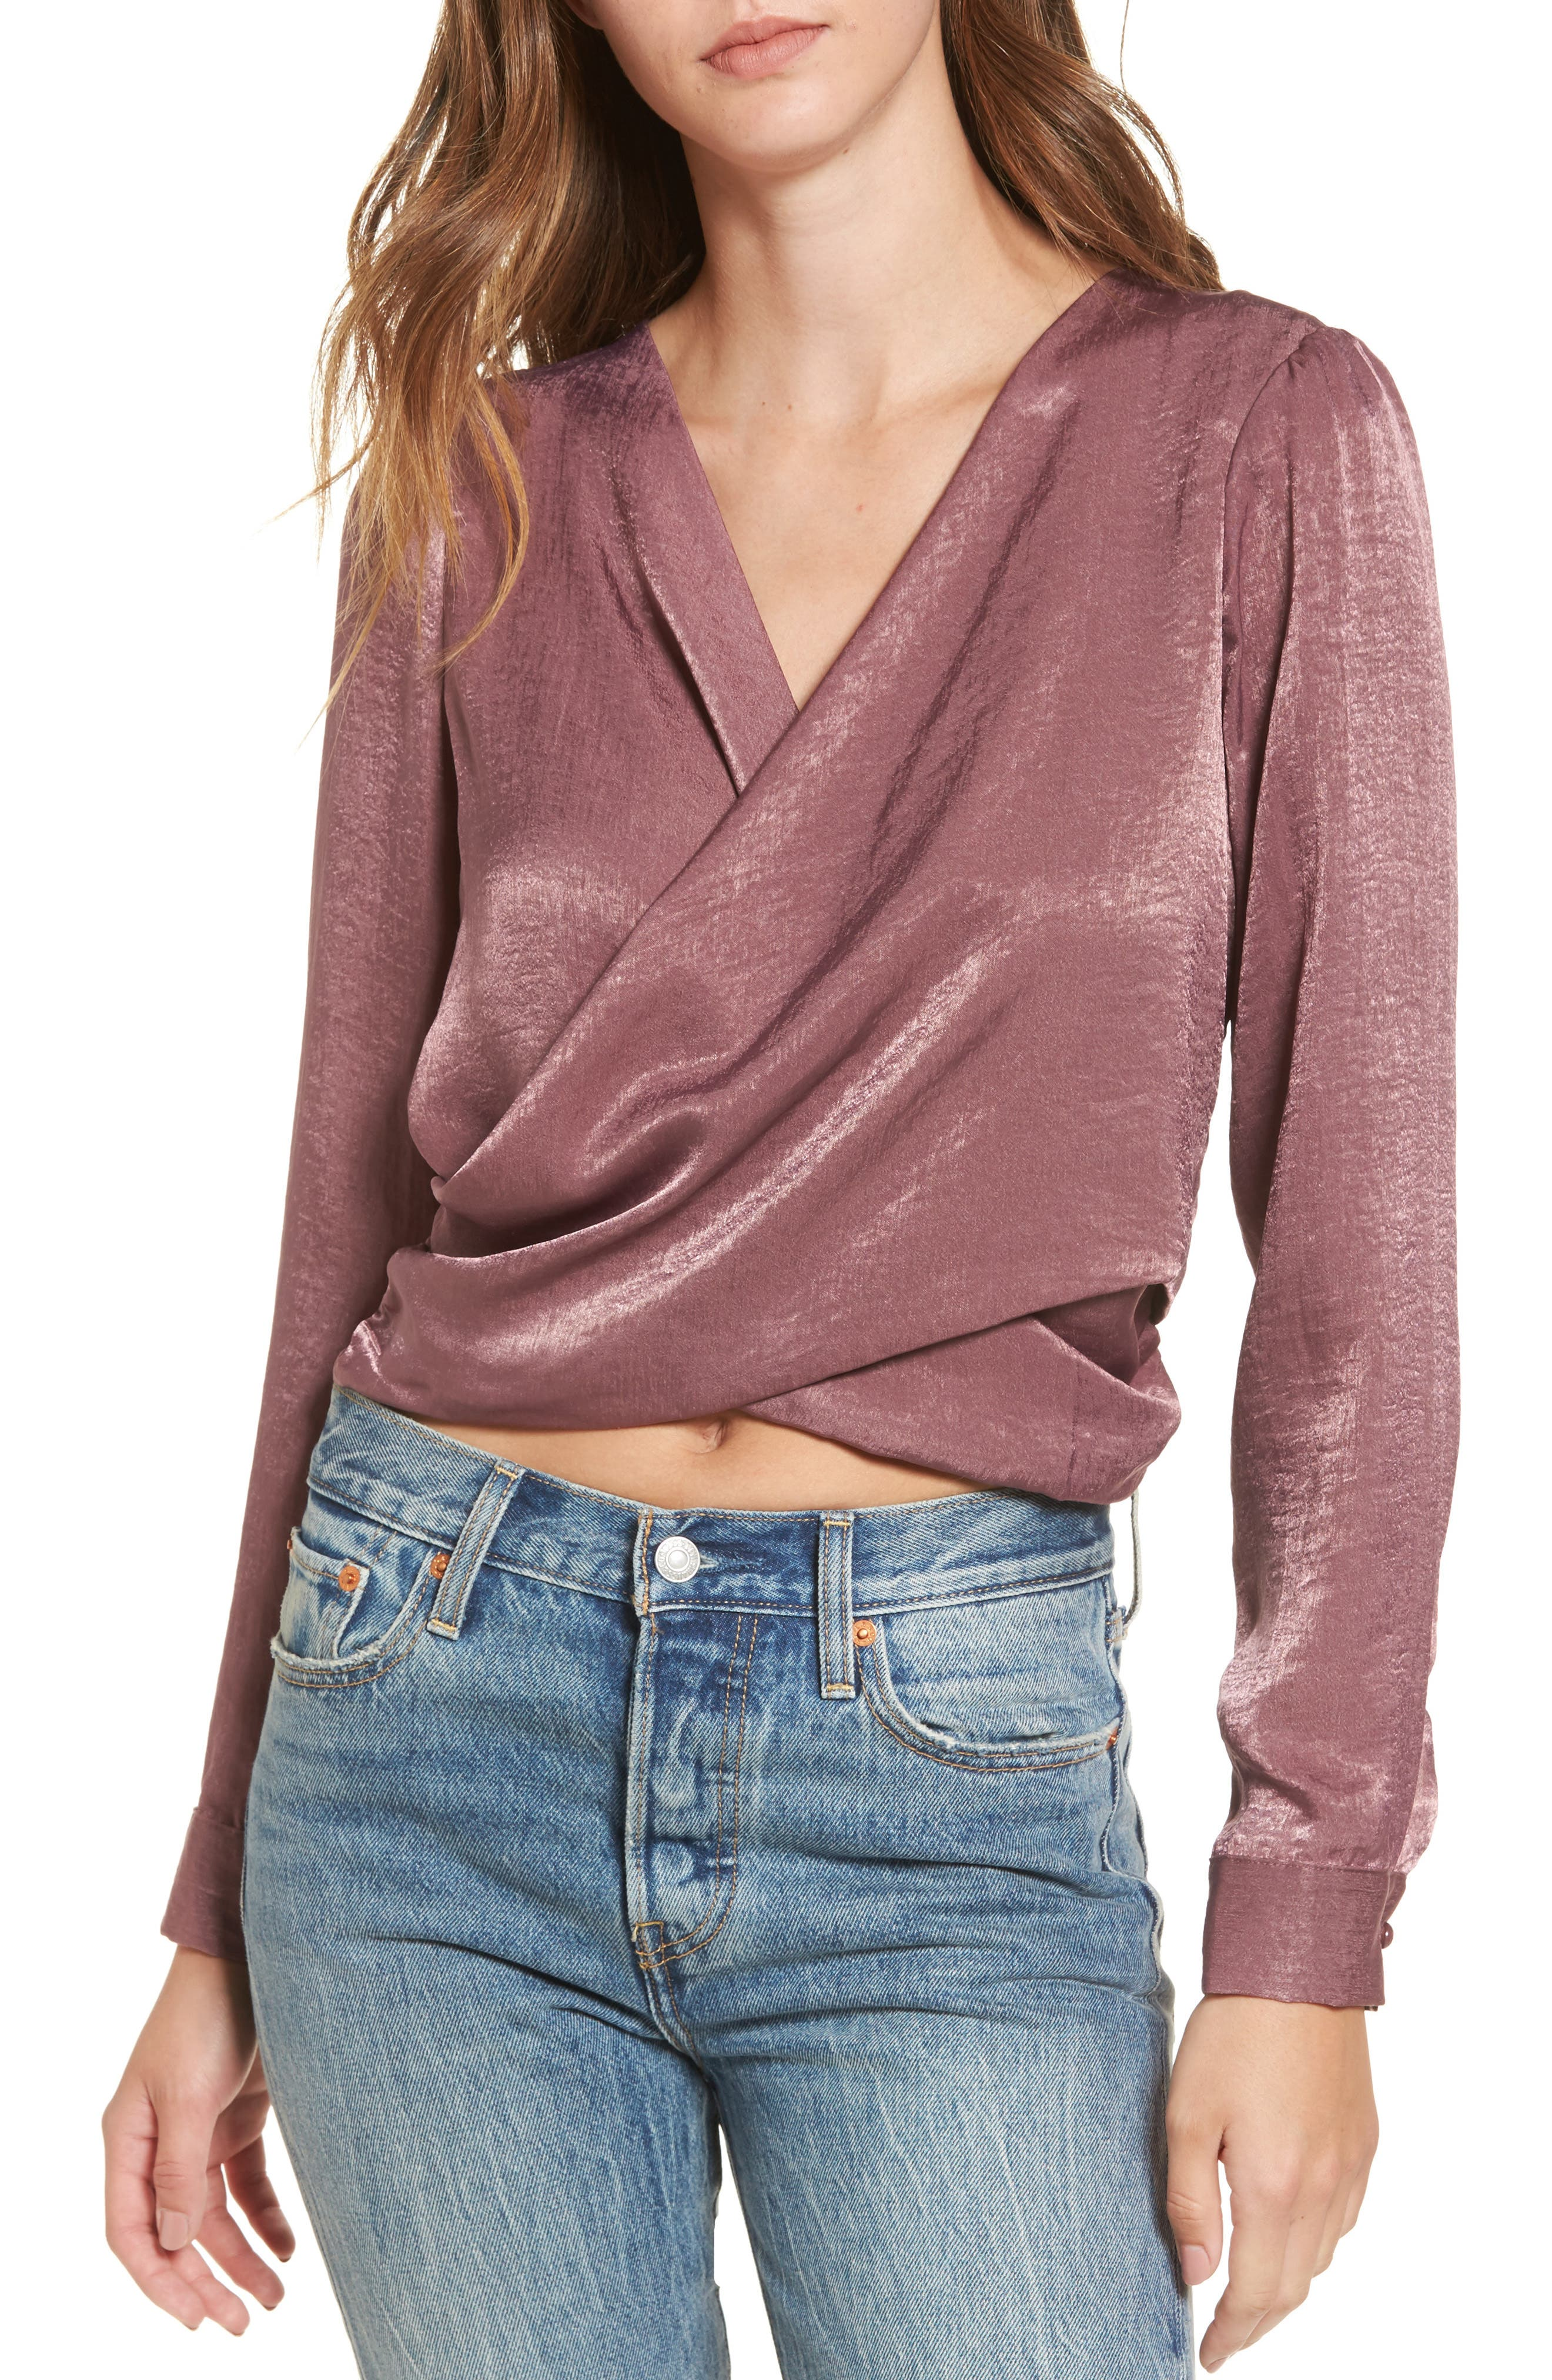 Sateen Tie Back Blouse,                         Main,                         color, Grape Shake 3182109Tcx